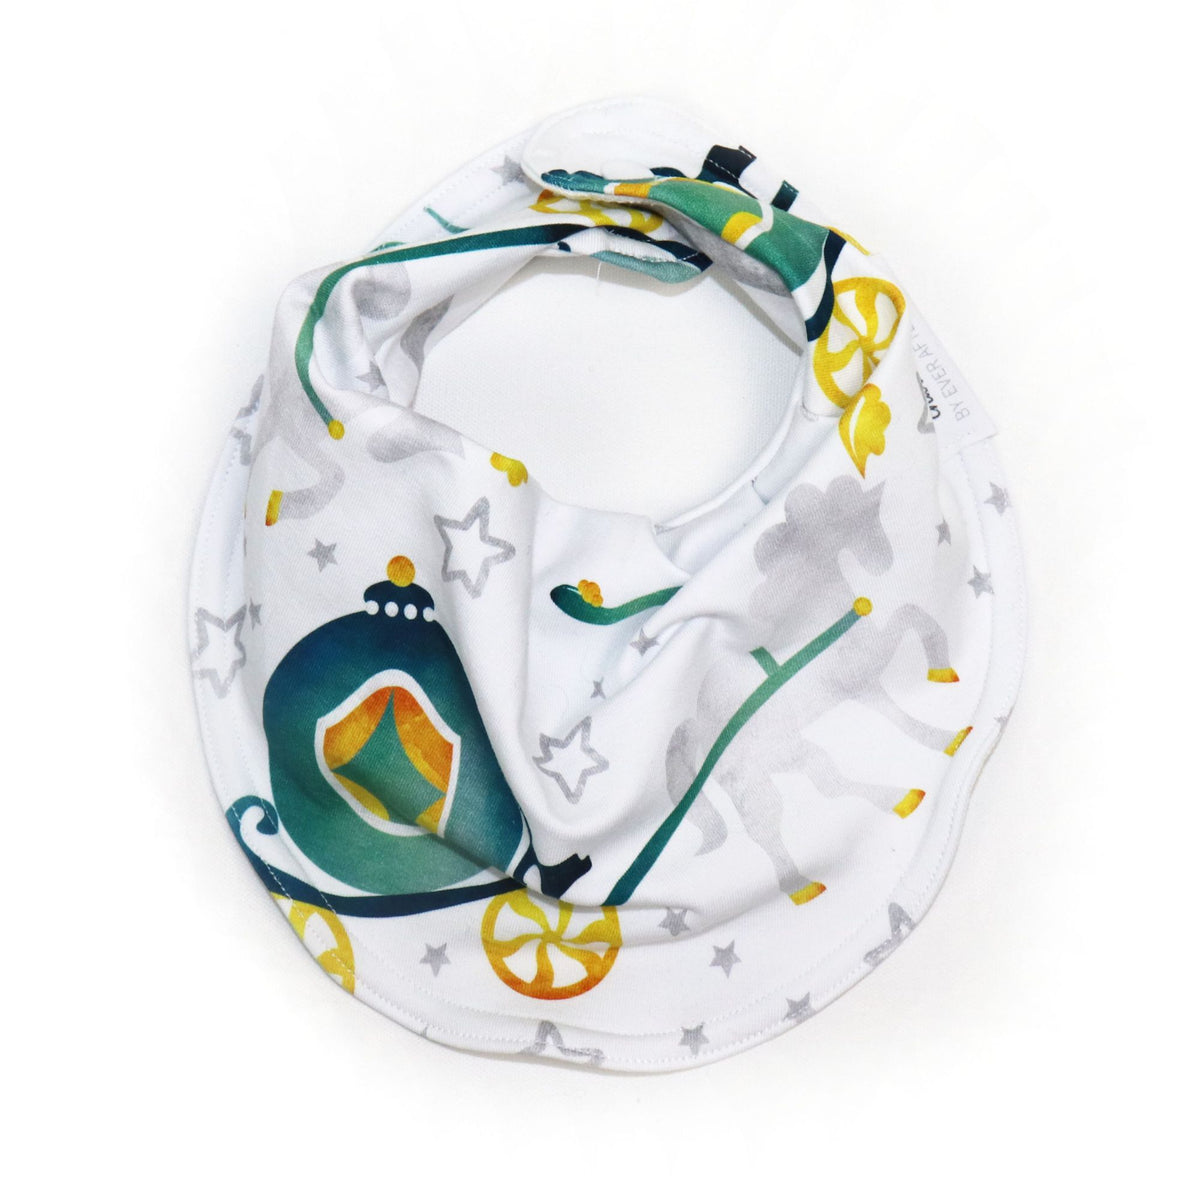 Bib Bundle in Charming Teal Carriage